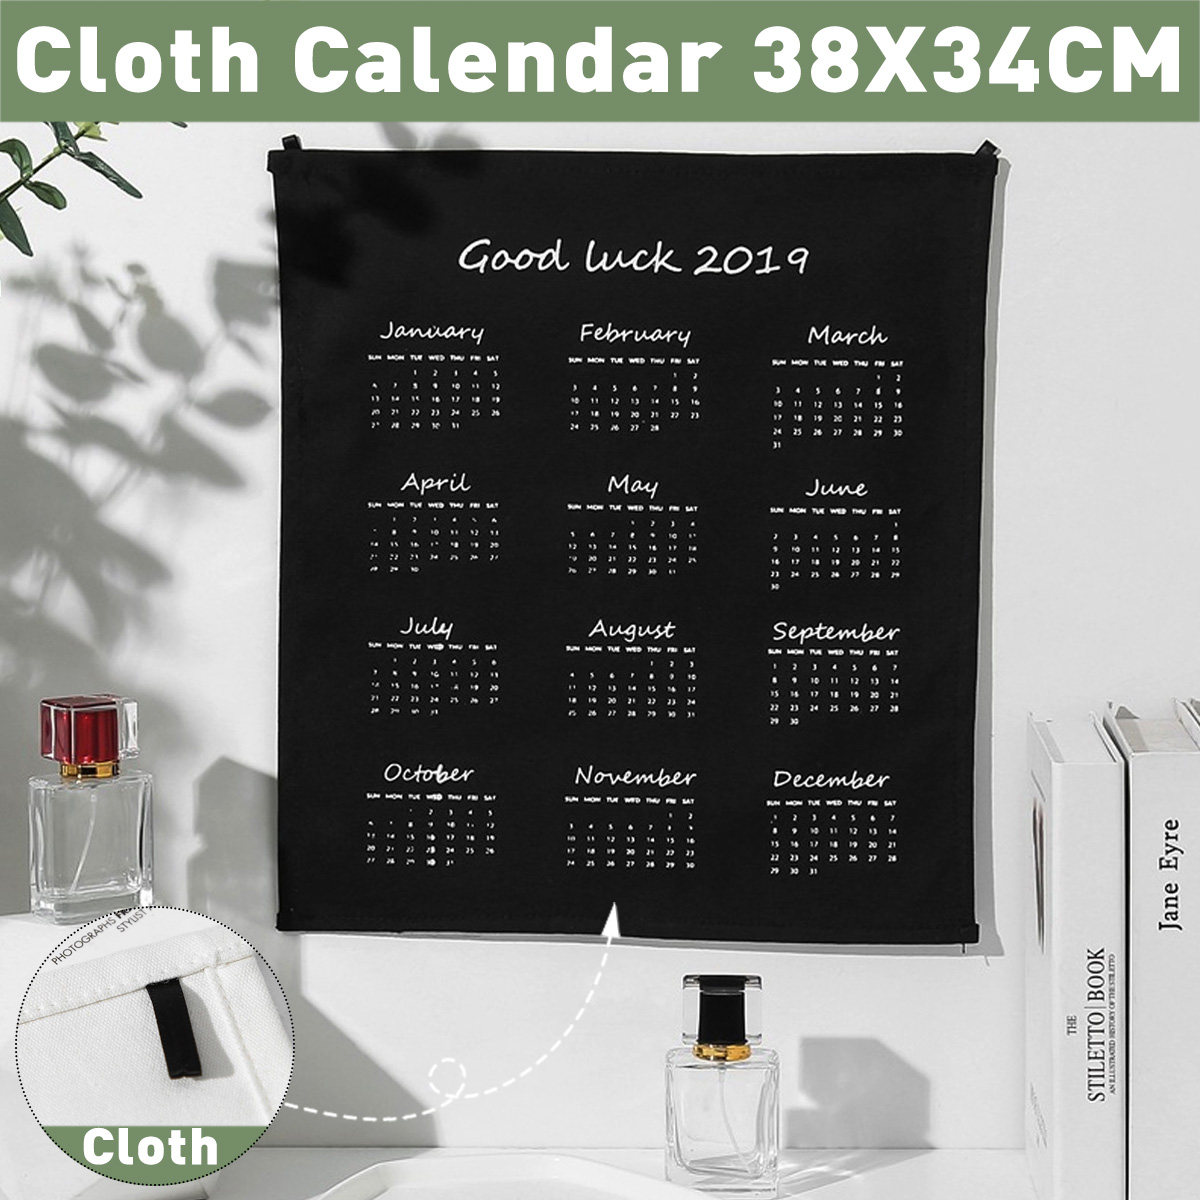 2020 Wall Calendar 365days Fabric Printed Calendar Clock Yearly Diary Study Planner Advent Calendar Cloth Wall Hanging Decor